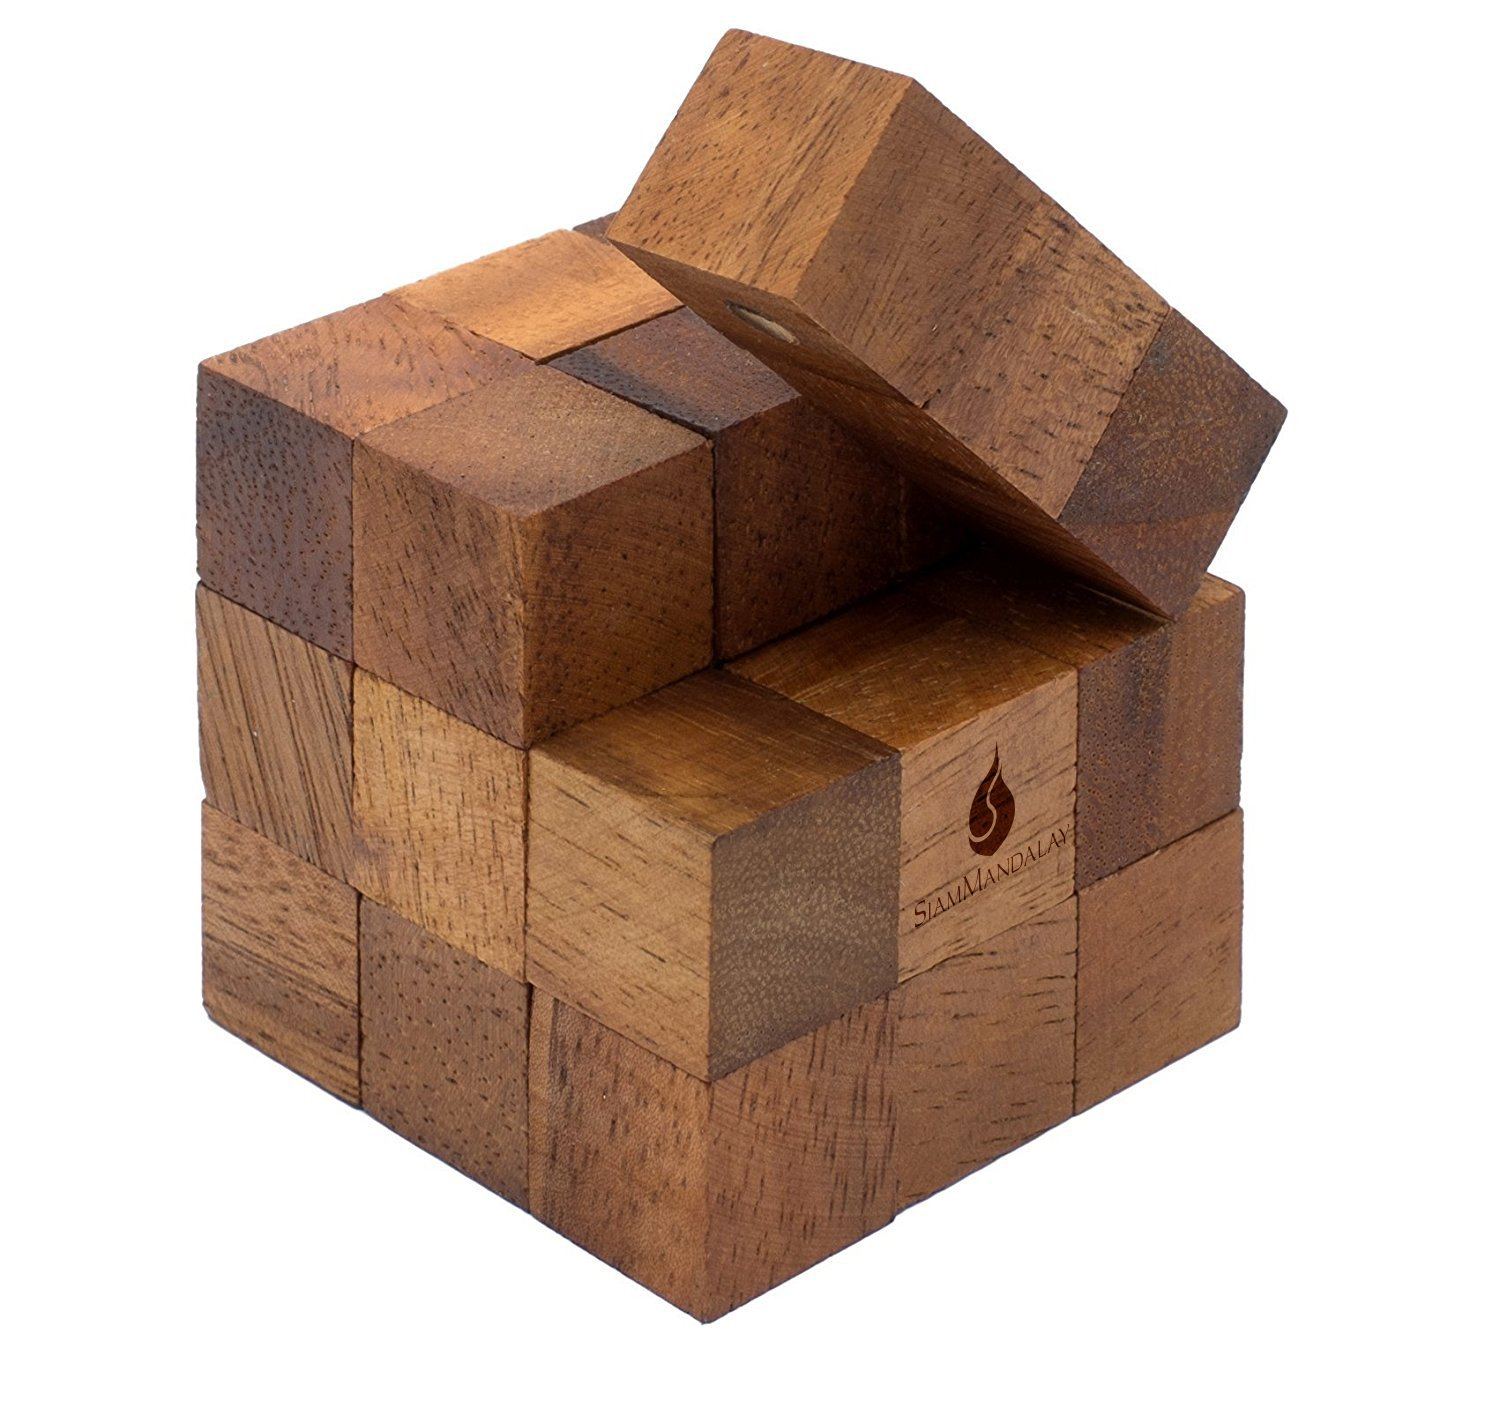 Snake Cube: Handmade & Organic 3D Brain Teaser Wooden Puzzle for Adults from SiamMandalay with SM Gift Box(Pictured)